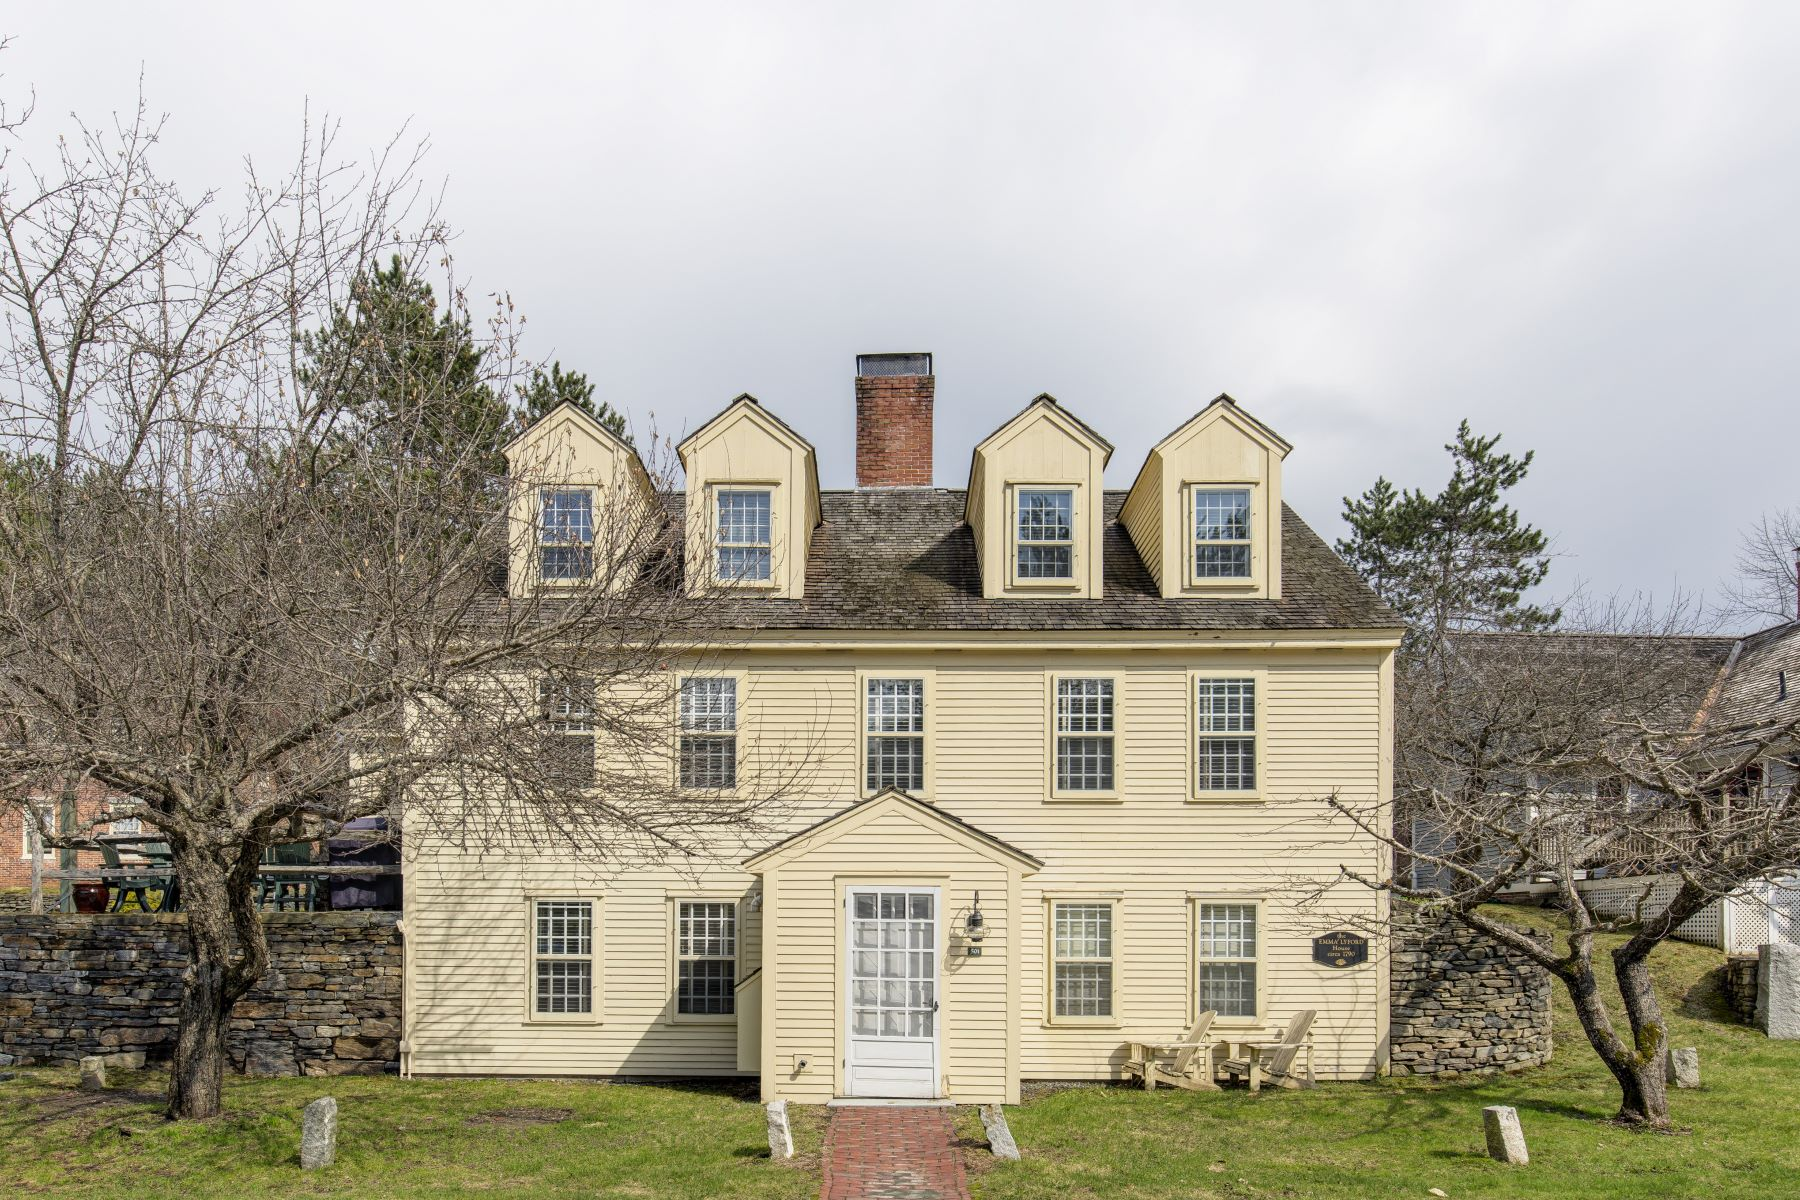 Single Family Home for Sale at One Bedroom Home in Lyme 85 Dartmouth College Hwy 501 Lyme, New Hampshire 03768 United States